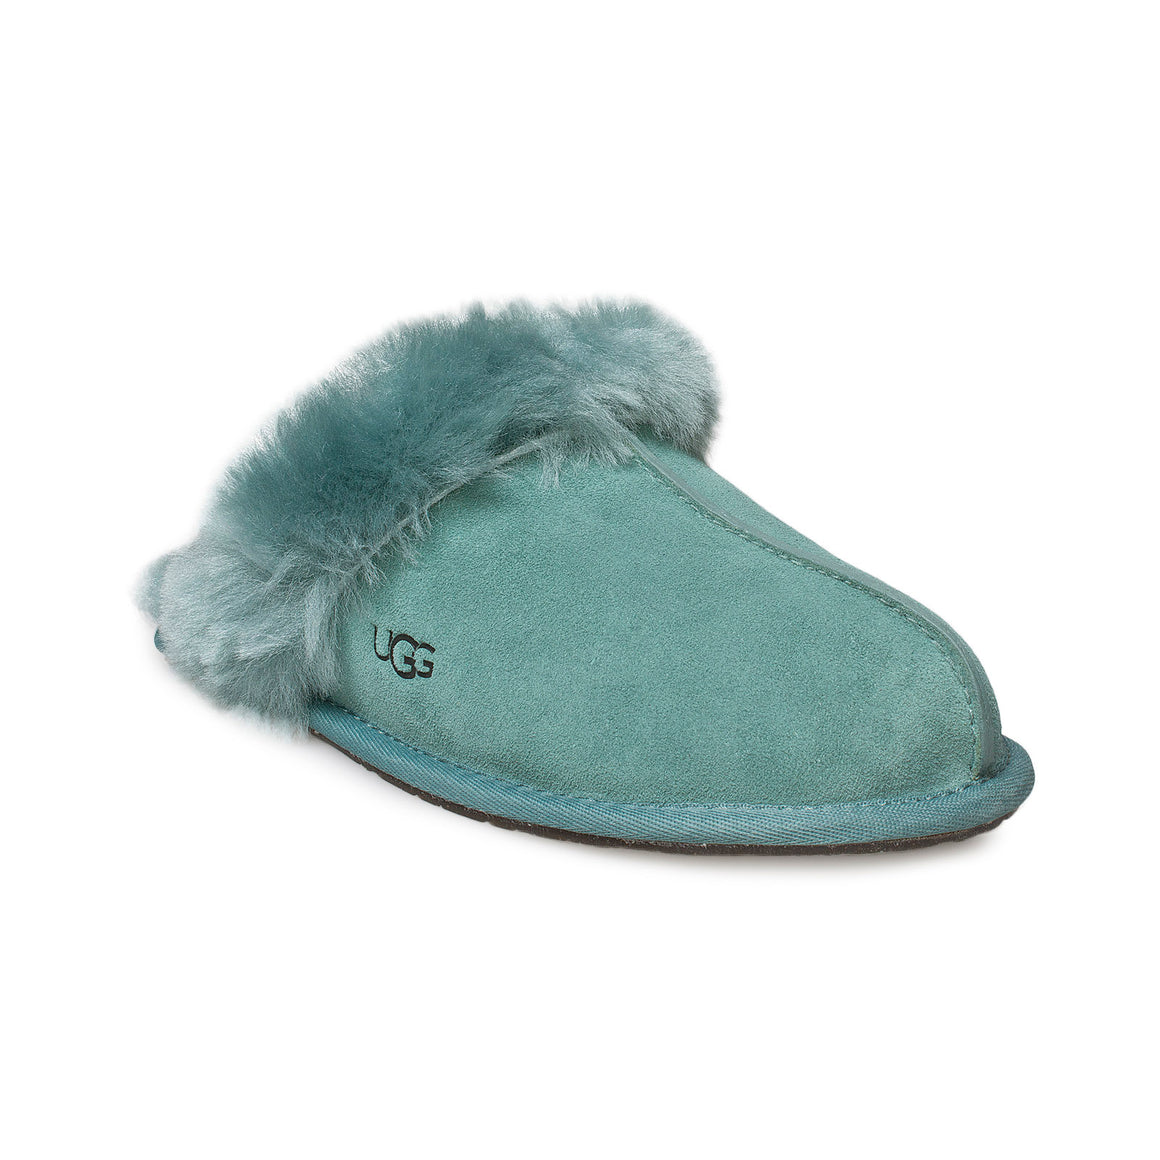 UGG Scuffette II Atlantic Slippers - Women's